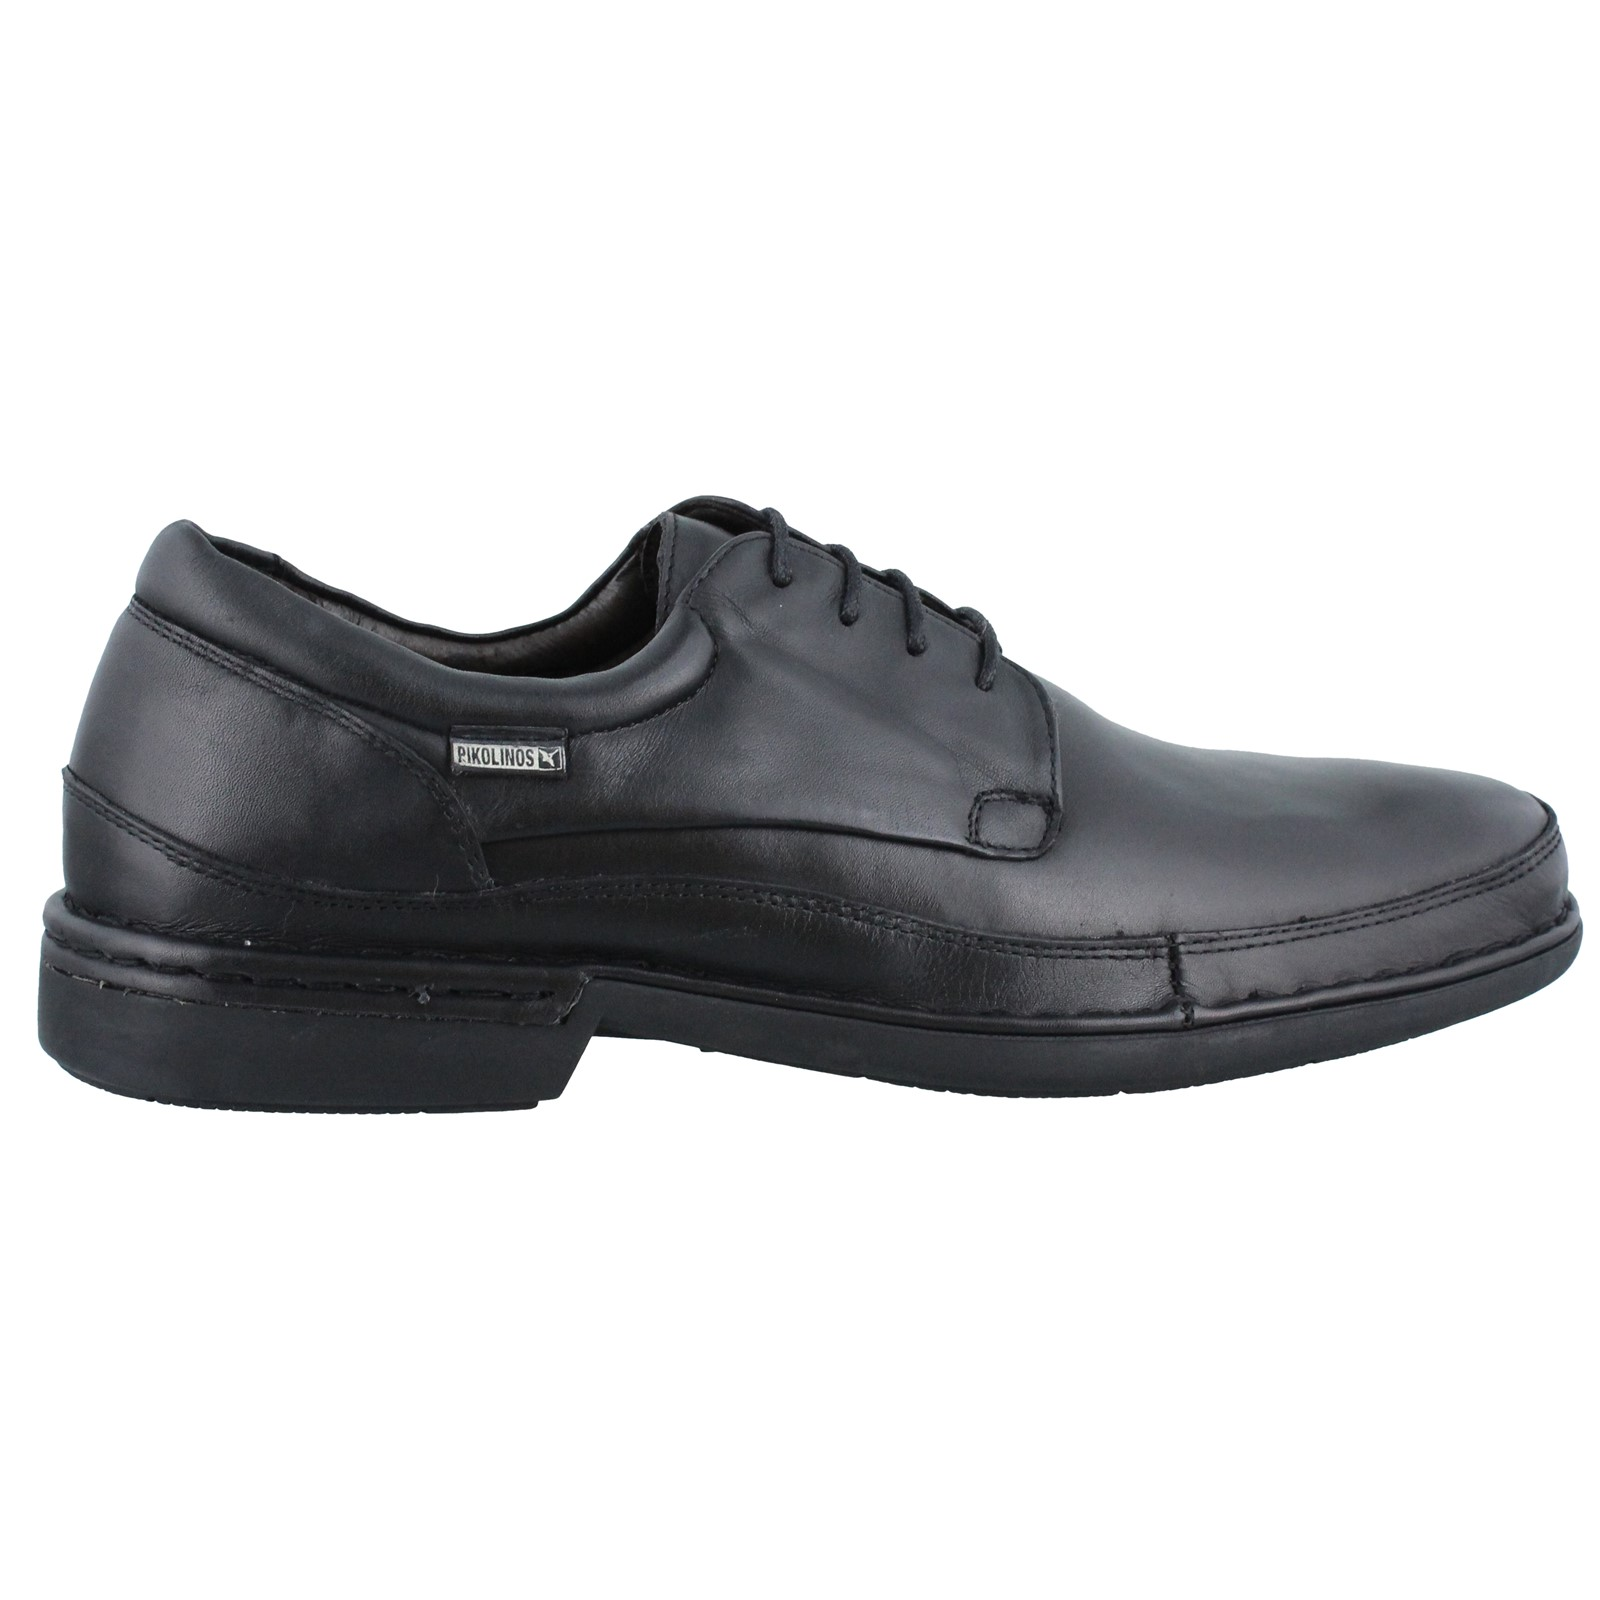 Men's Pikolinos, Oviedo 08F-5013 Lace up Shoe